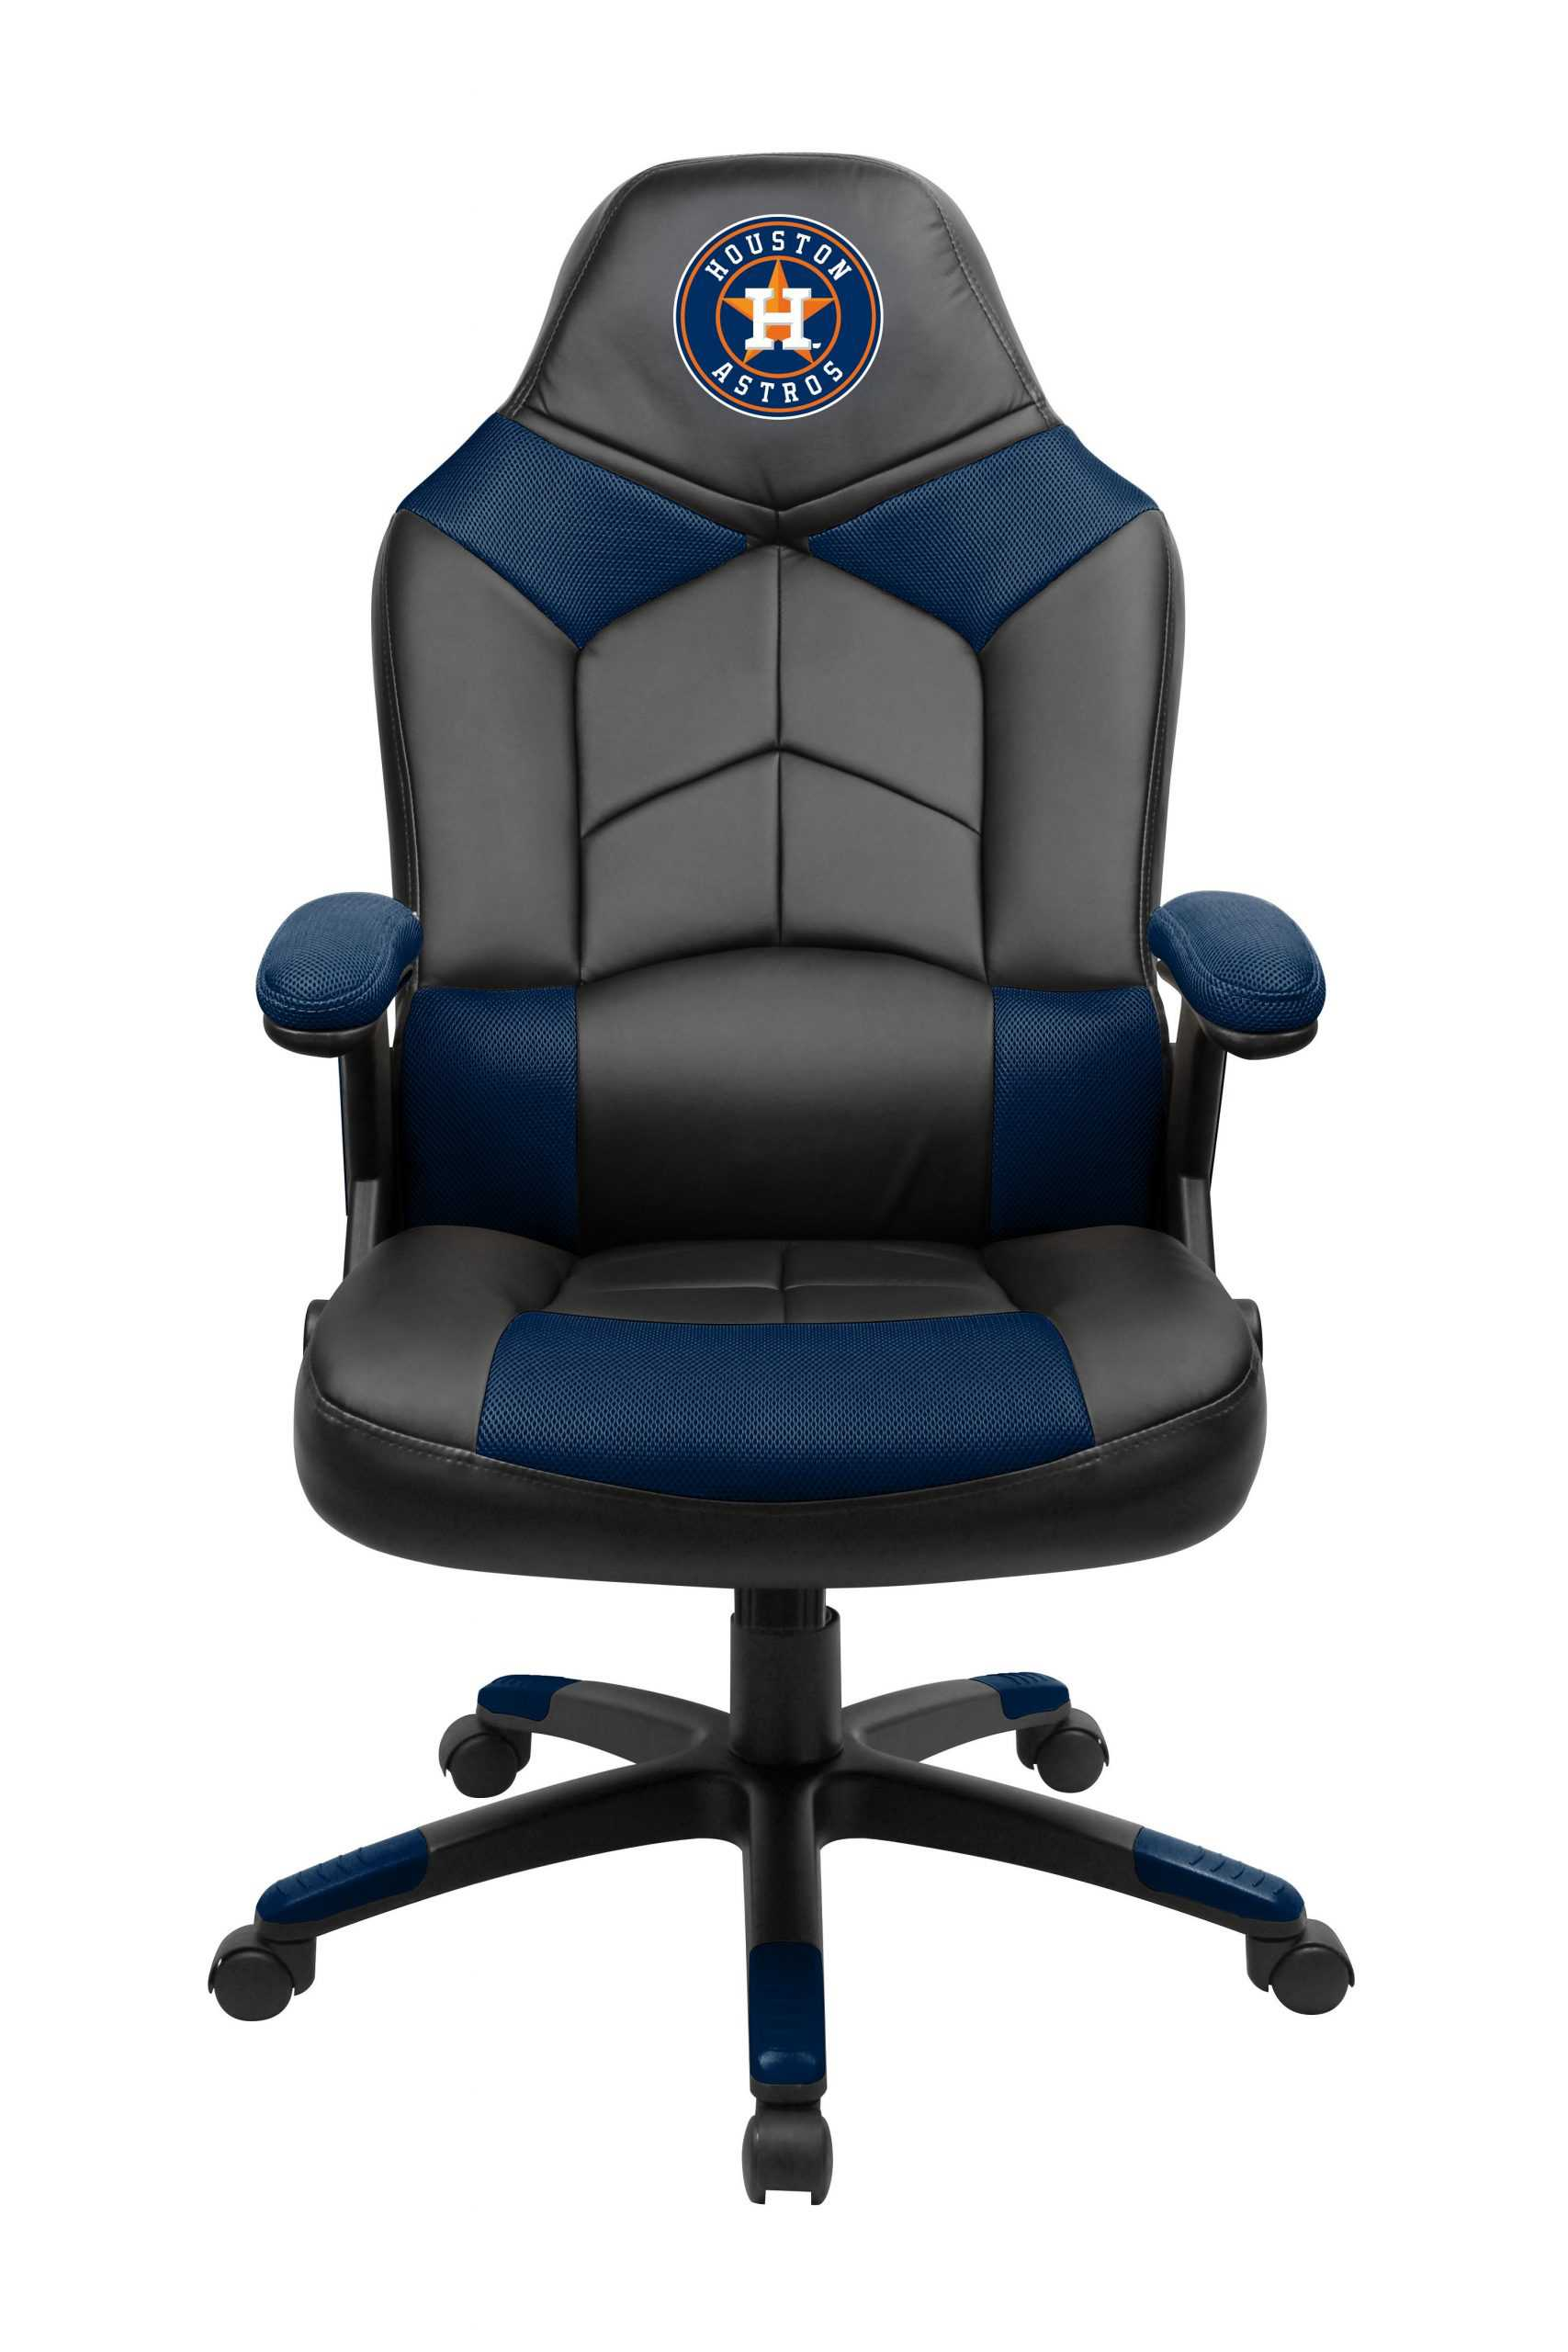 HOUSTON ASTROS OVERSIZED GAMING CHAIR